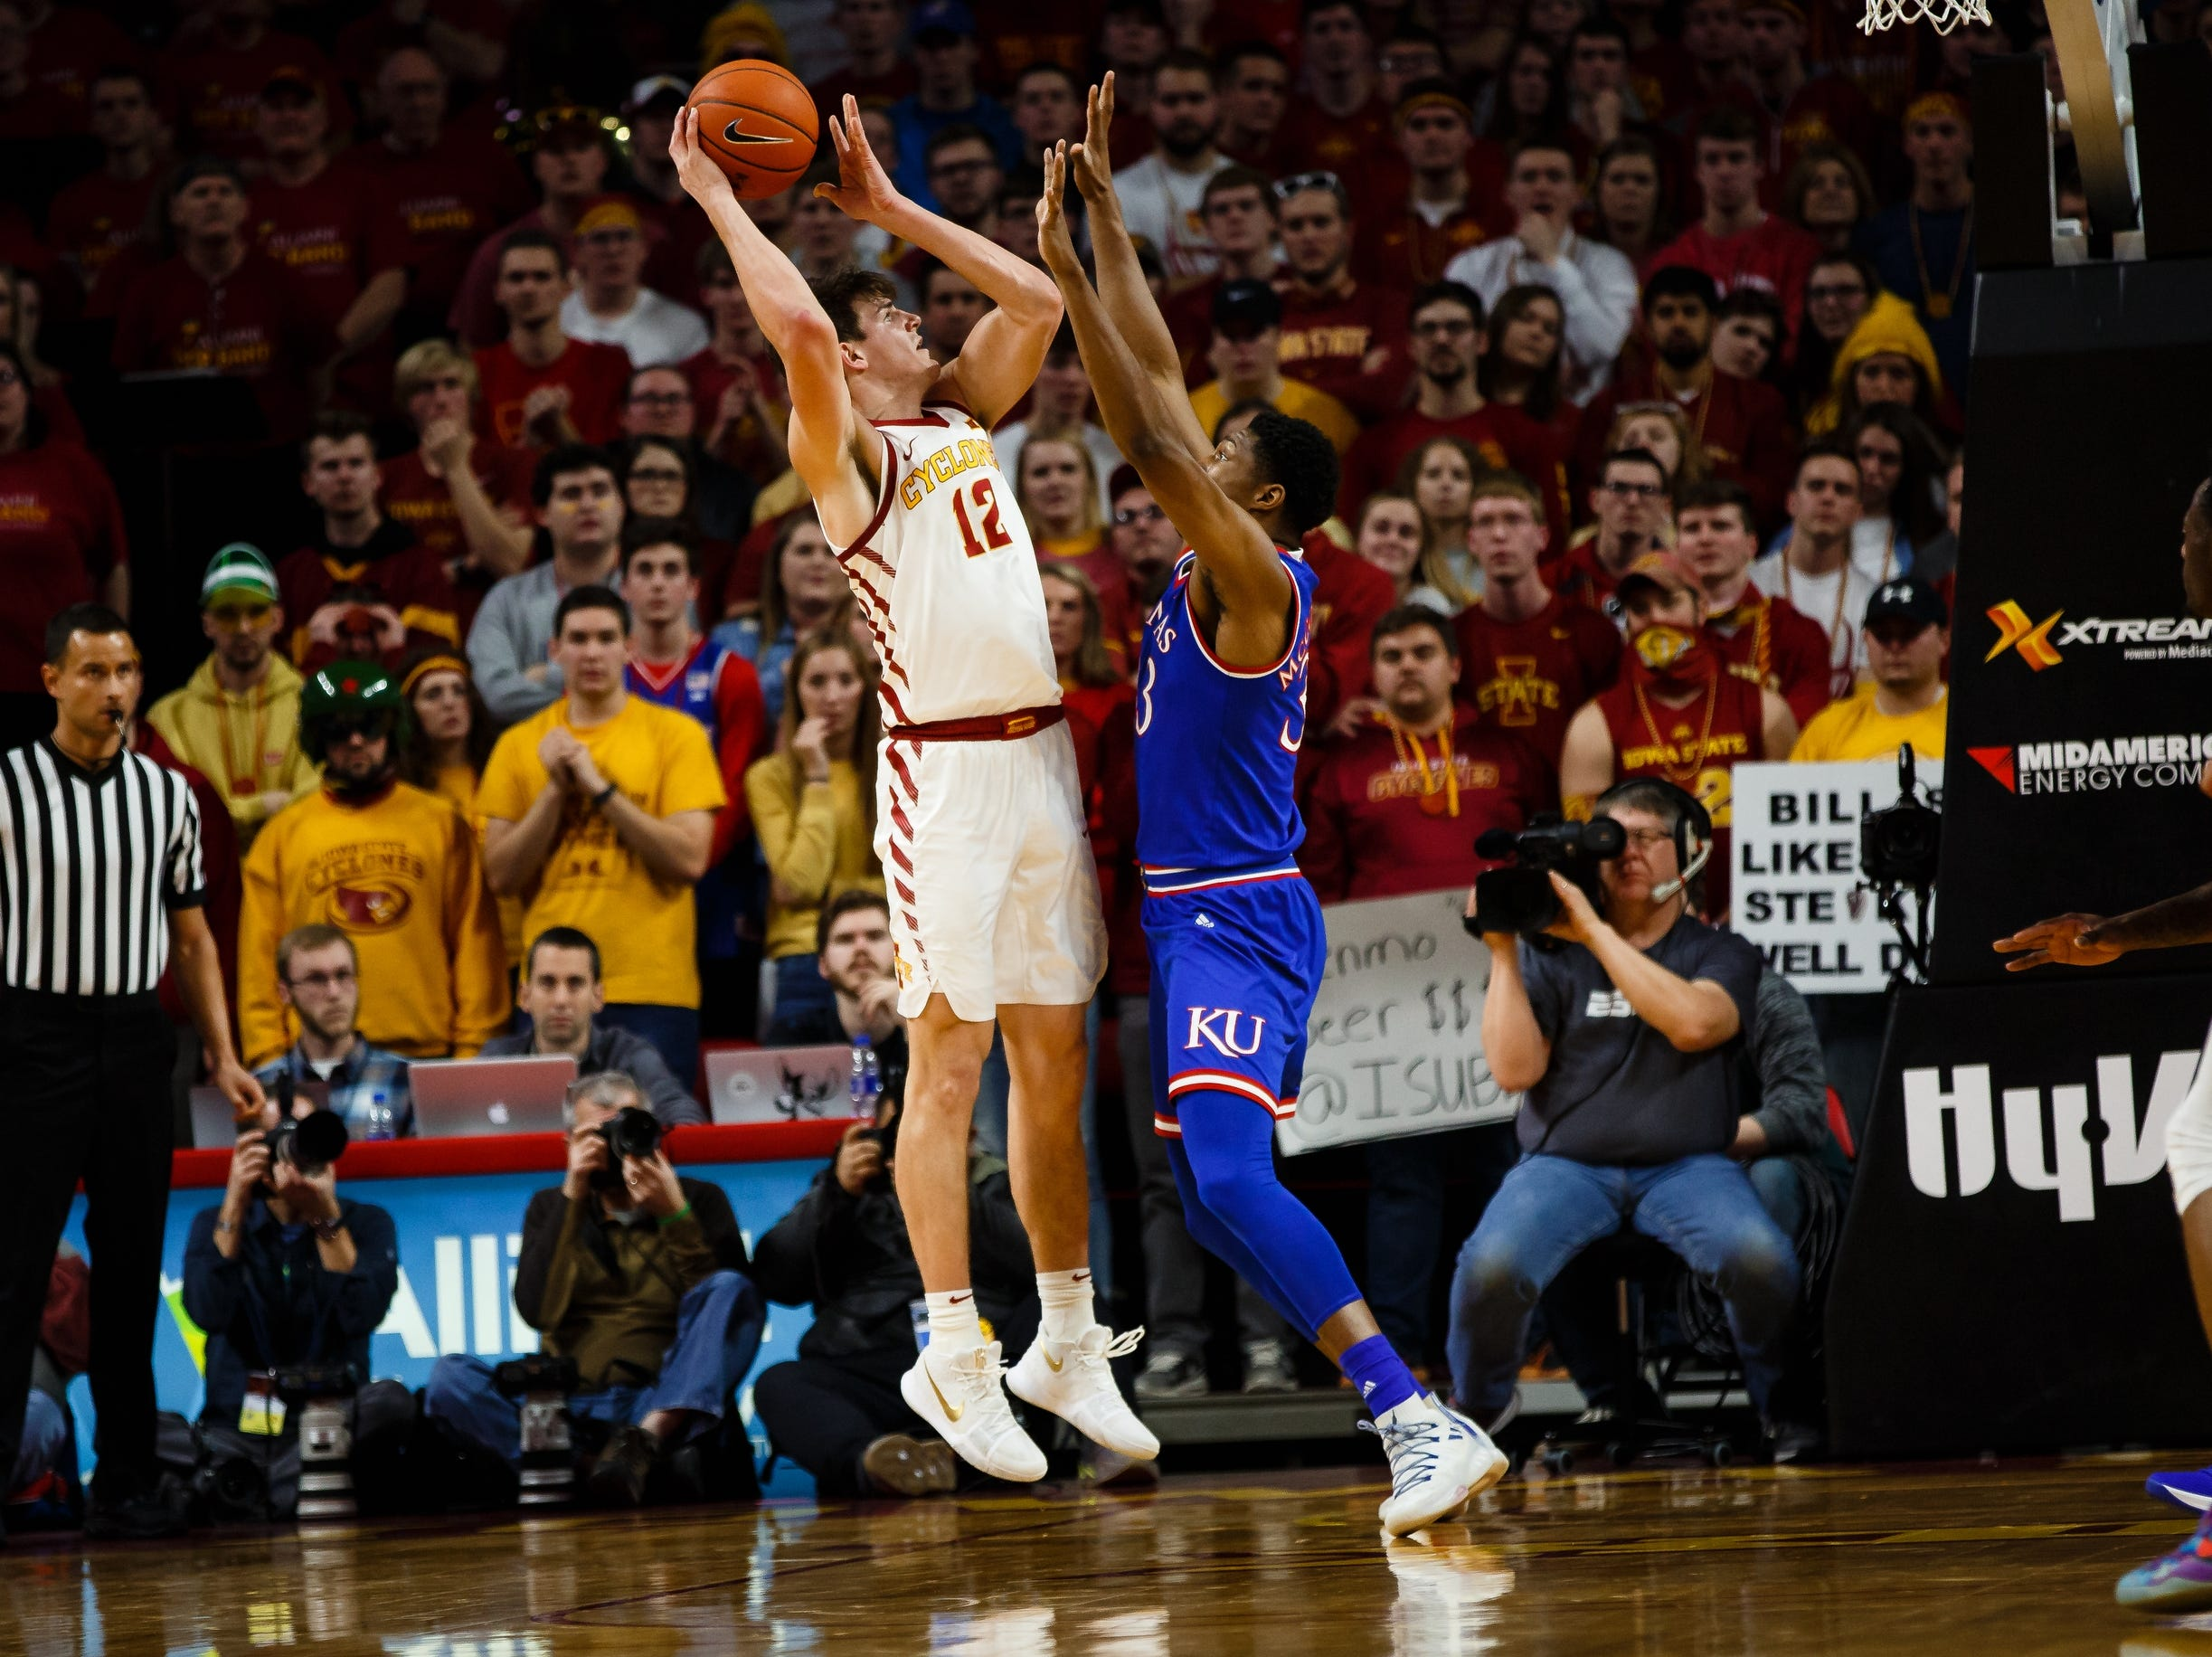 Iowa State's Michael Jacobson (12) shoots during the first half of their basketball game on Saturday, Jan. 5, 2019, in Ames.